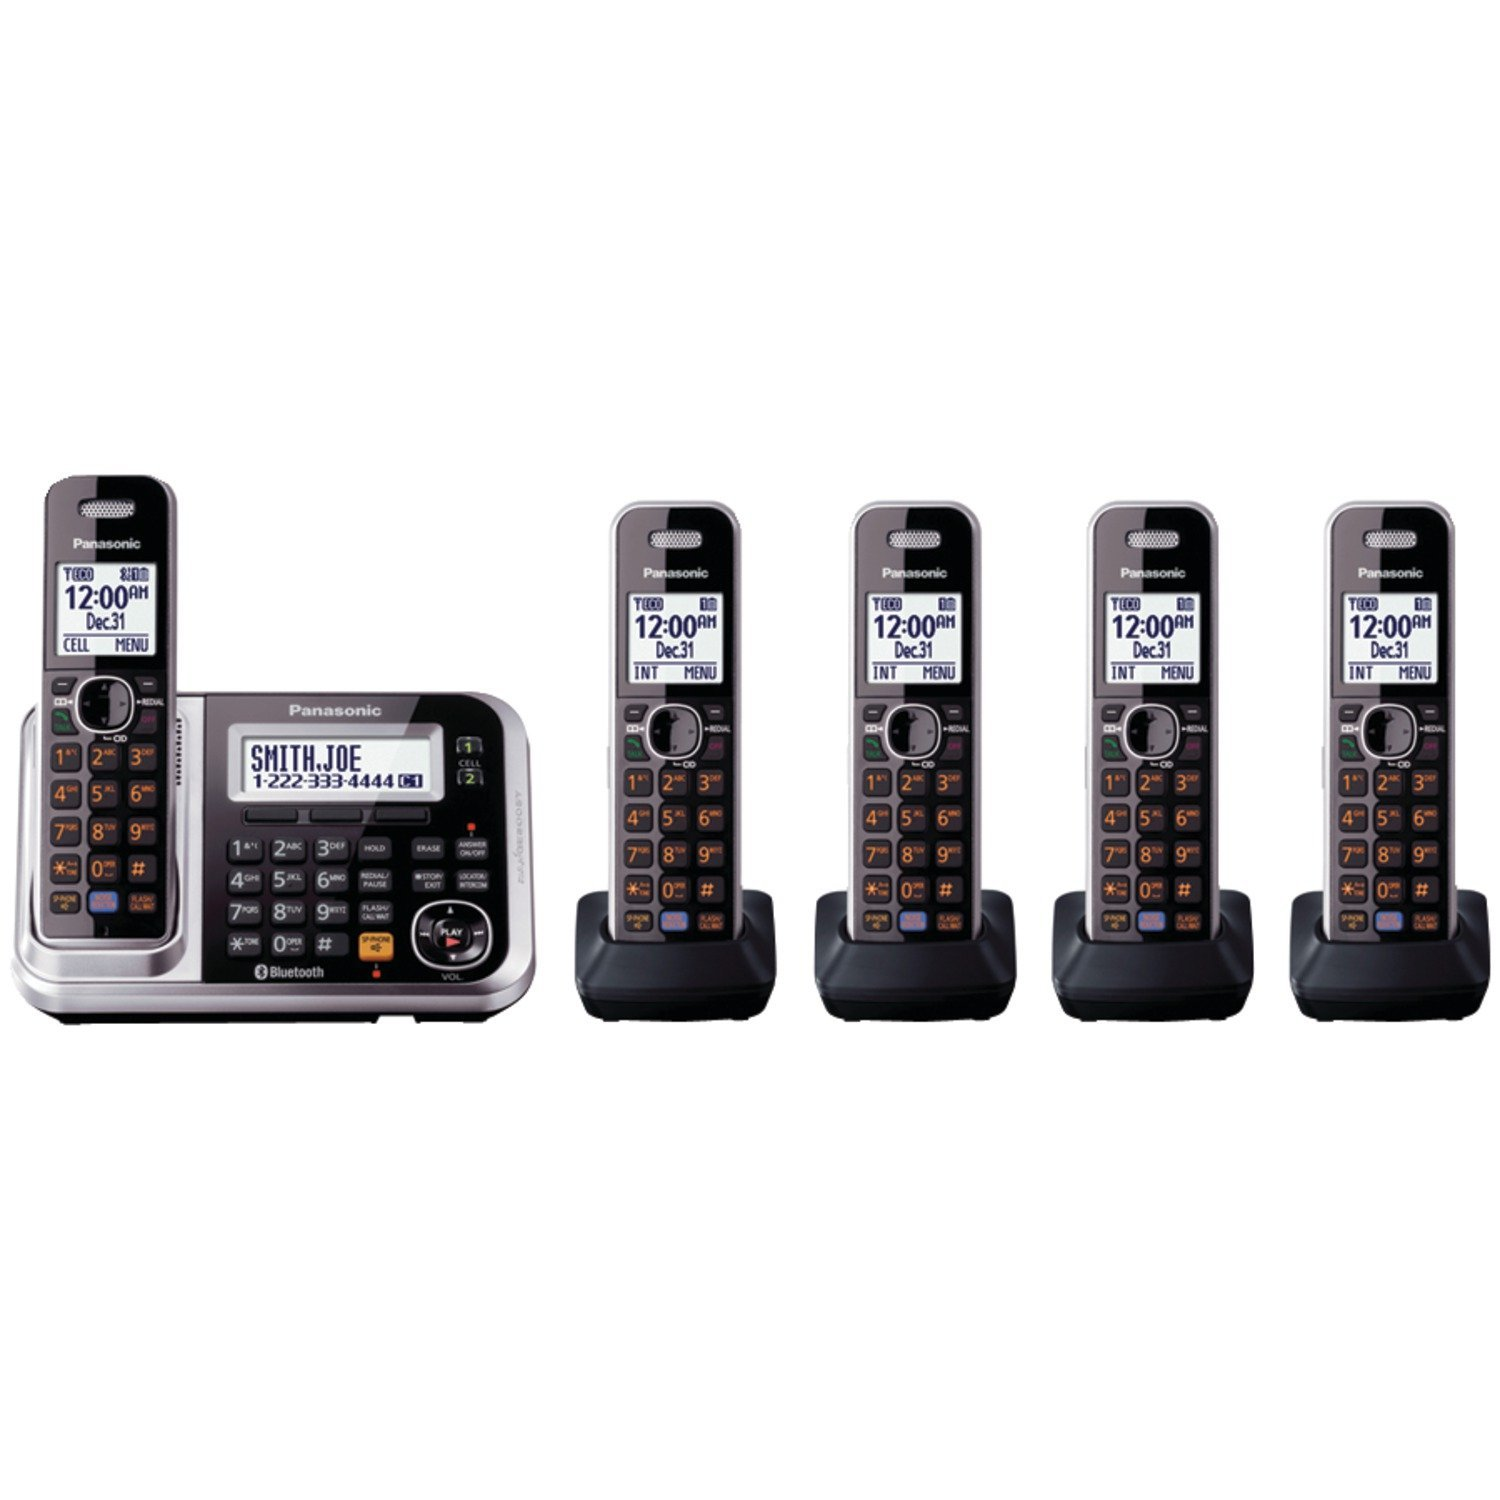 Panasonic KX-TG7875S Link2Cell - Cordless Phones